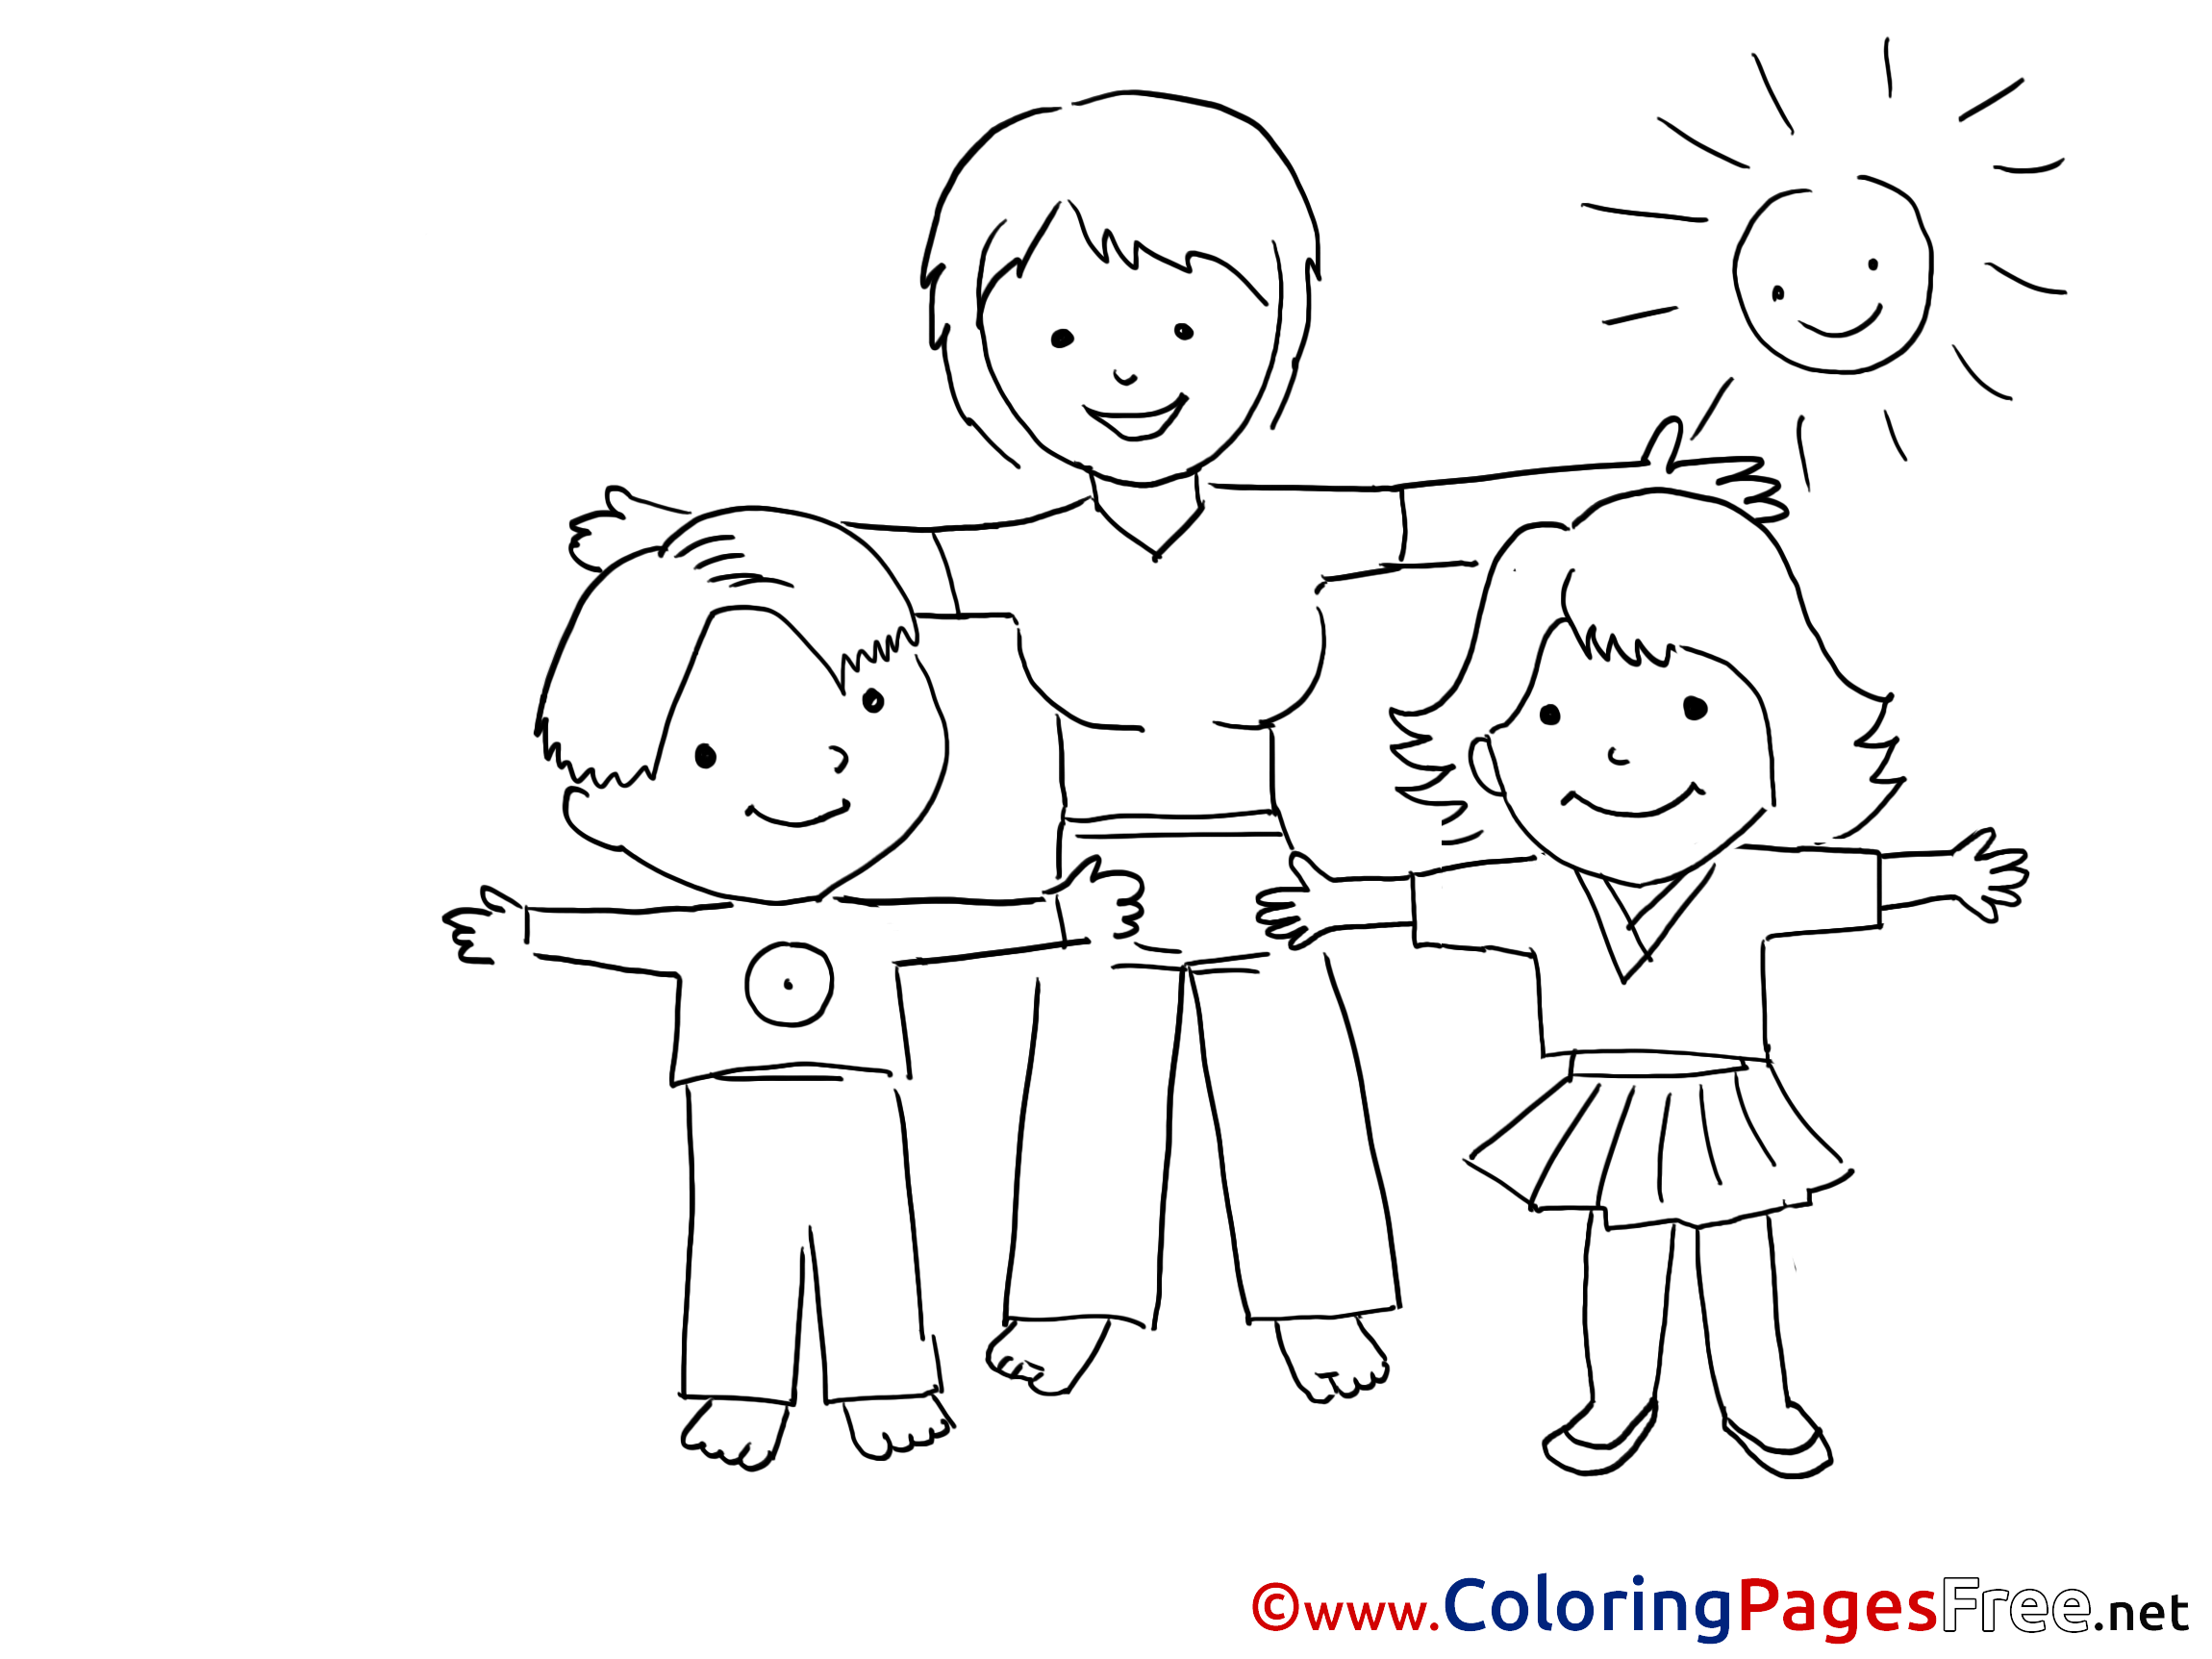 Free coloring pages for exercise - Free Coloring Pages For Exercise 2